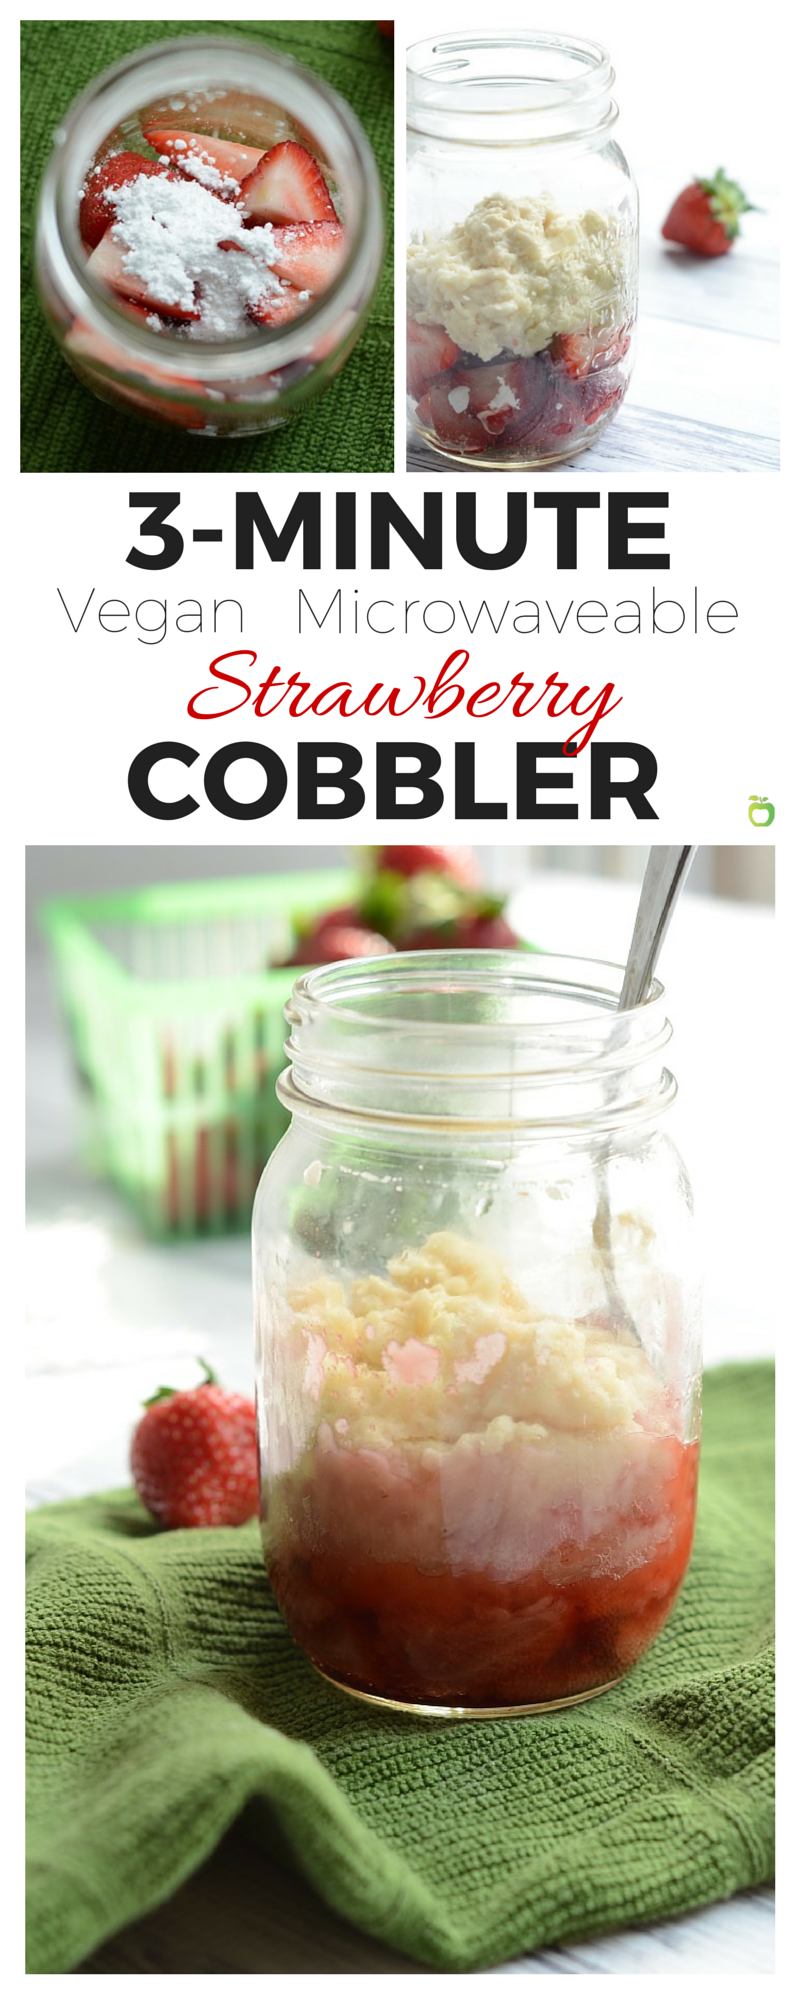 This 3 Minute Microwaveable Strawberry Cobbler doesn't skimp on delicious! Use different berries for a quick and custom dessert for everyone, and use frozen berries for a hot treat year round! | Vegan